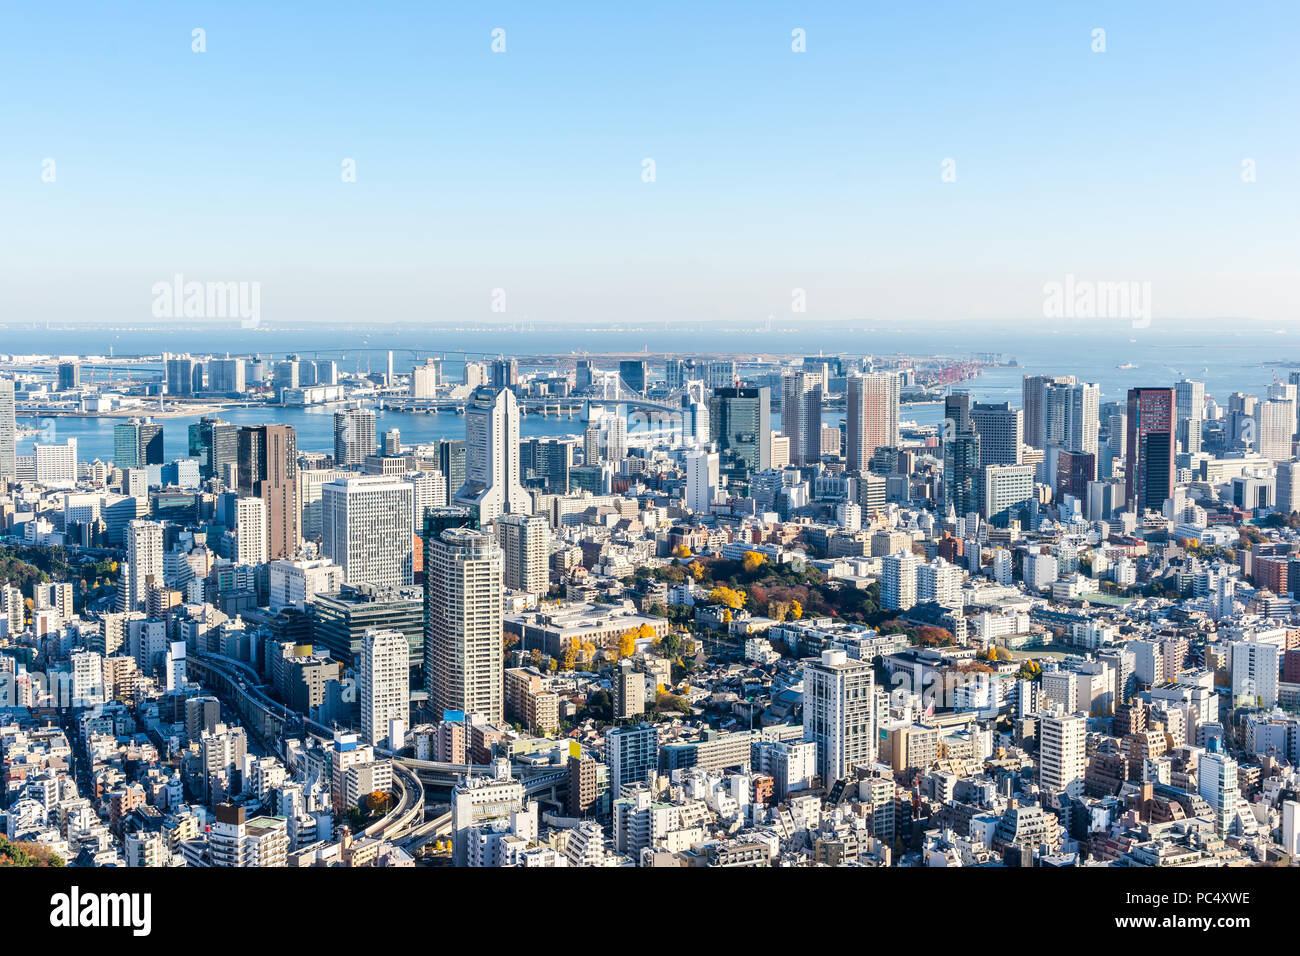 Asia Business concept for real estate and corporate construction - panoramic modern city skyline bird eye aerial view of Odaiba & Tokyo Metropolitan E - Stock Image